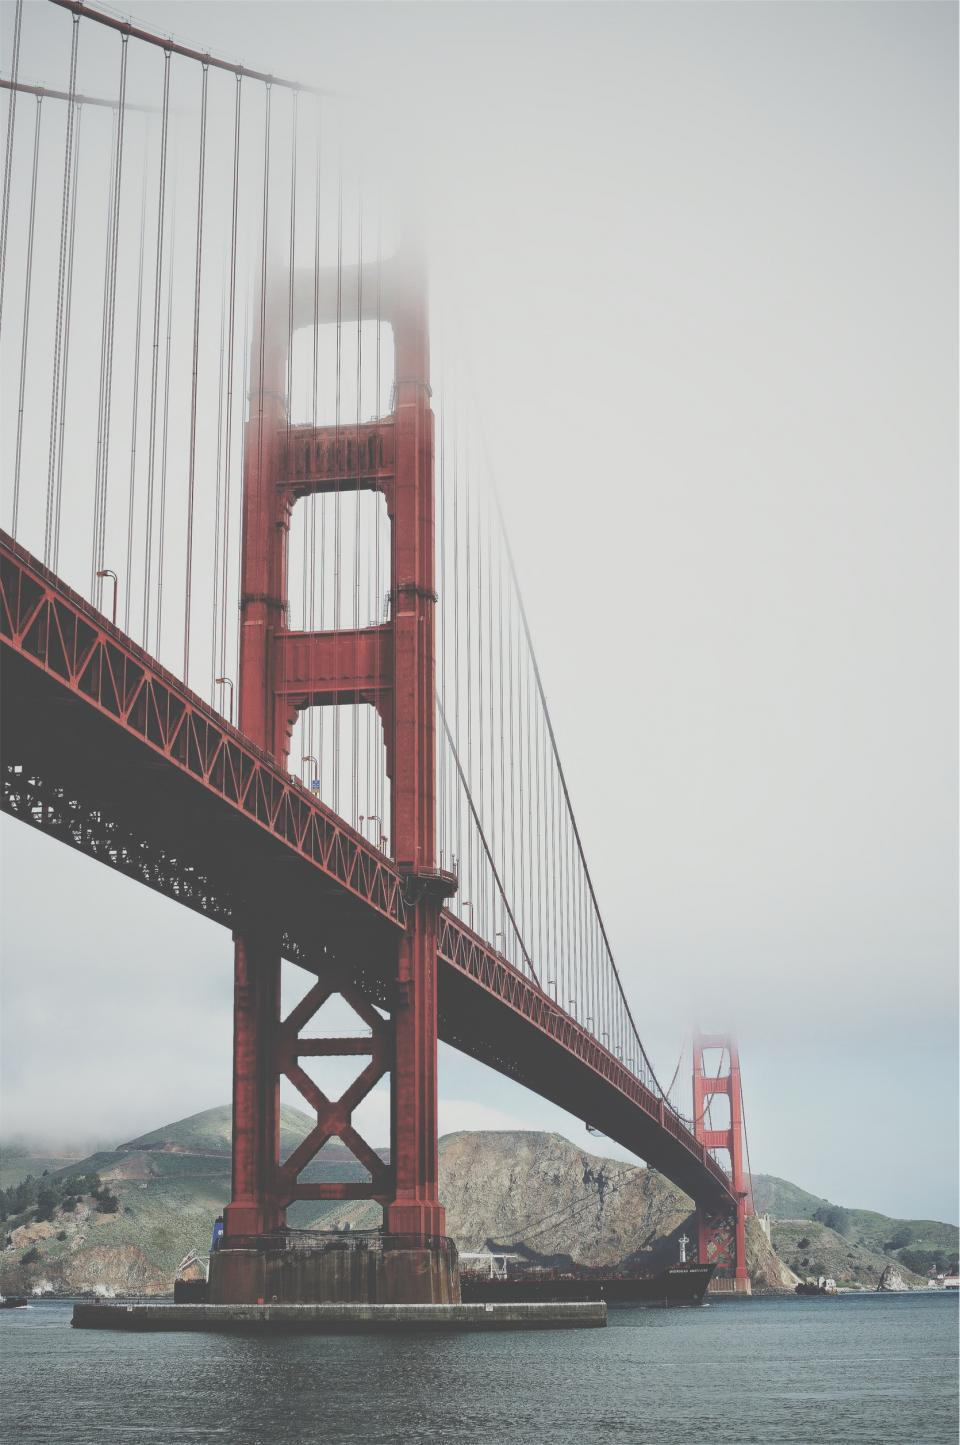 Free stock photo of Golden Gate Bridge San Francisco